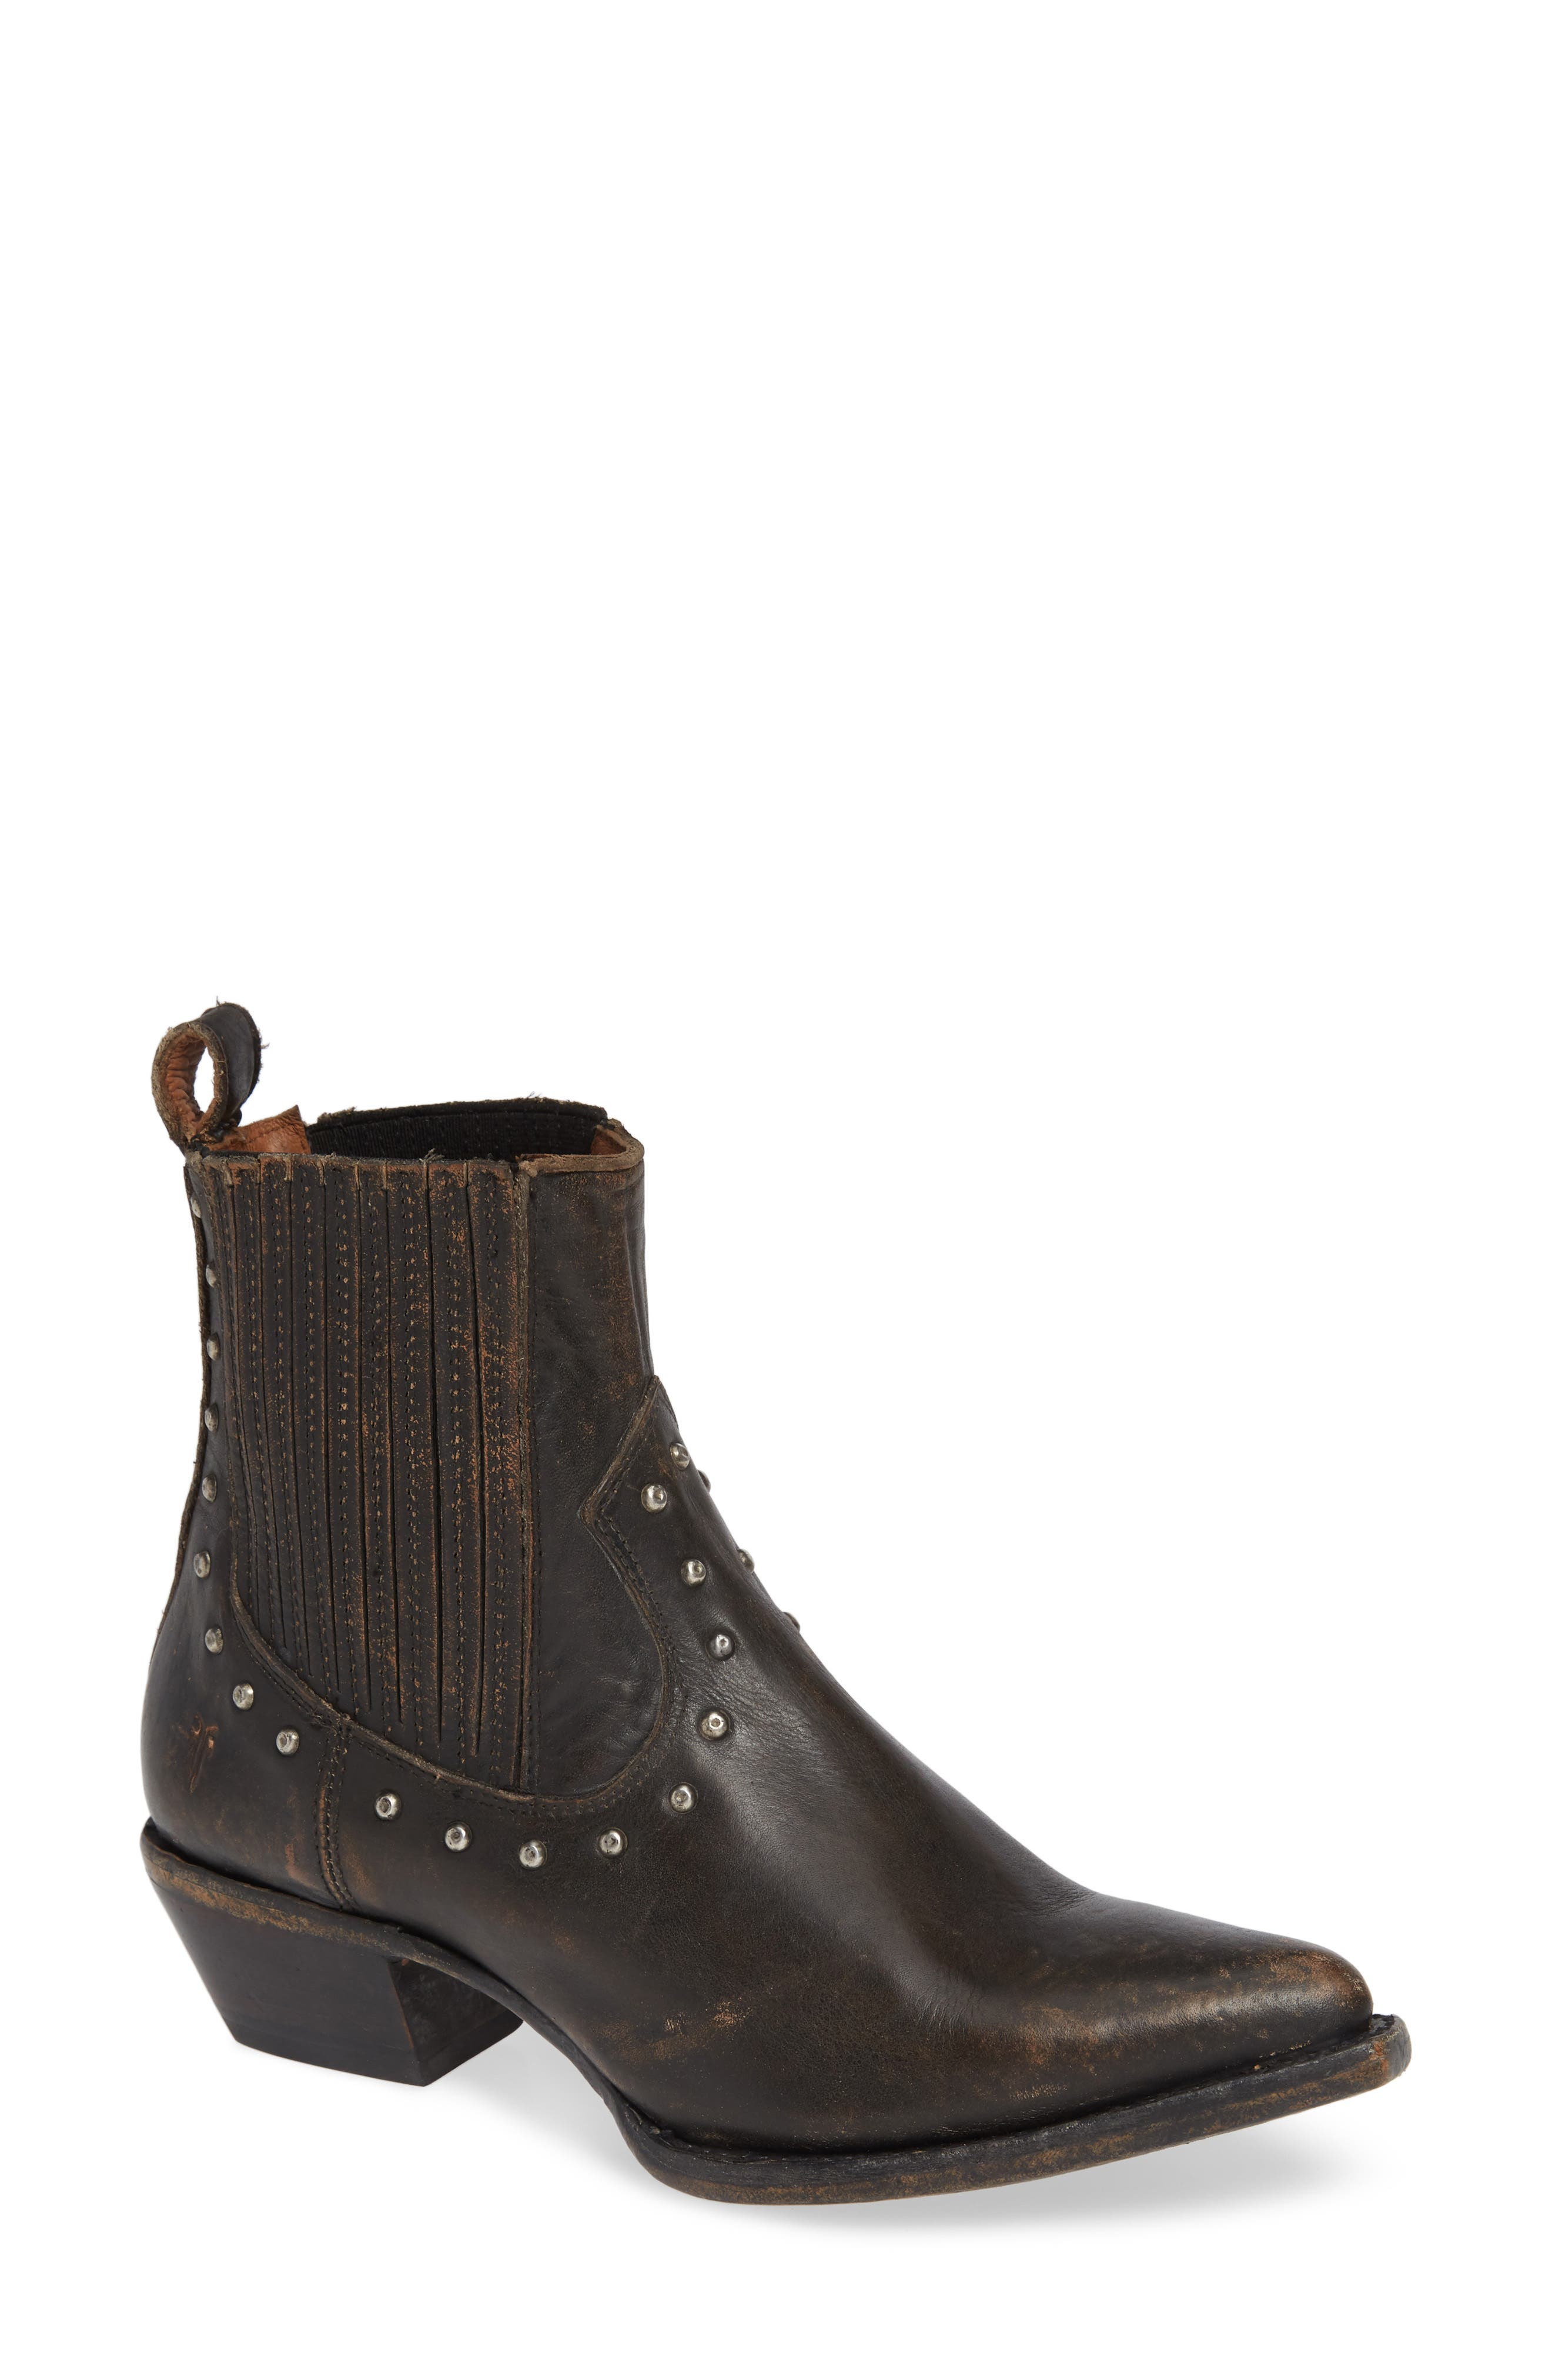 Sacha Studded Leather Chelsea Boots in Black Leather